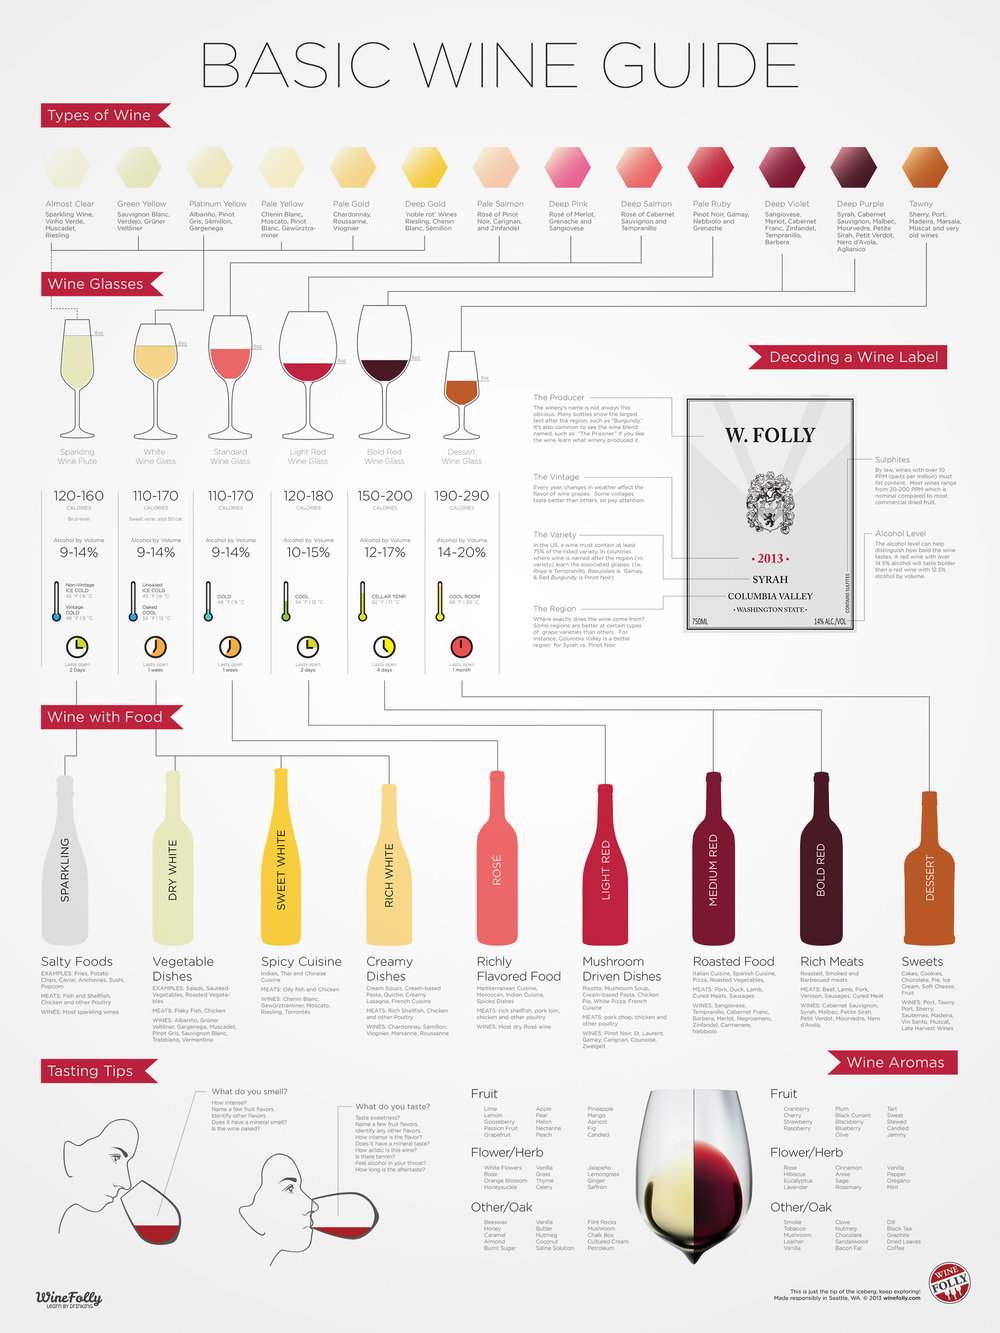 Article taken from Wine Folly. Please visit Wine Folly to read more interesting bits and purchase this poster.